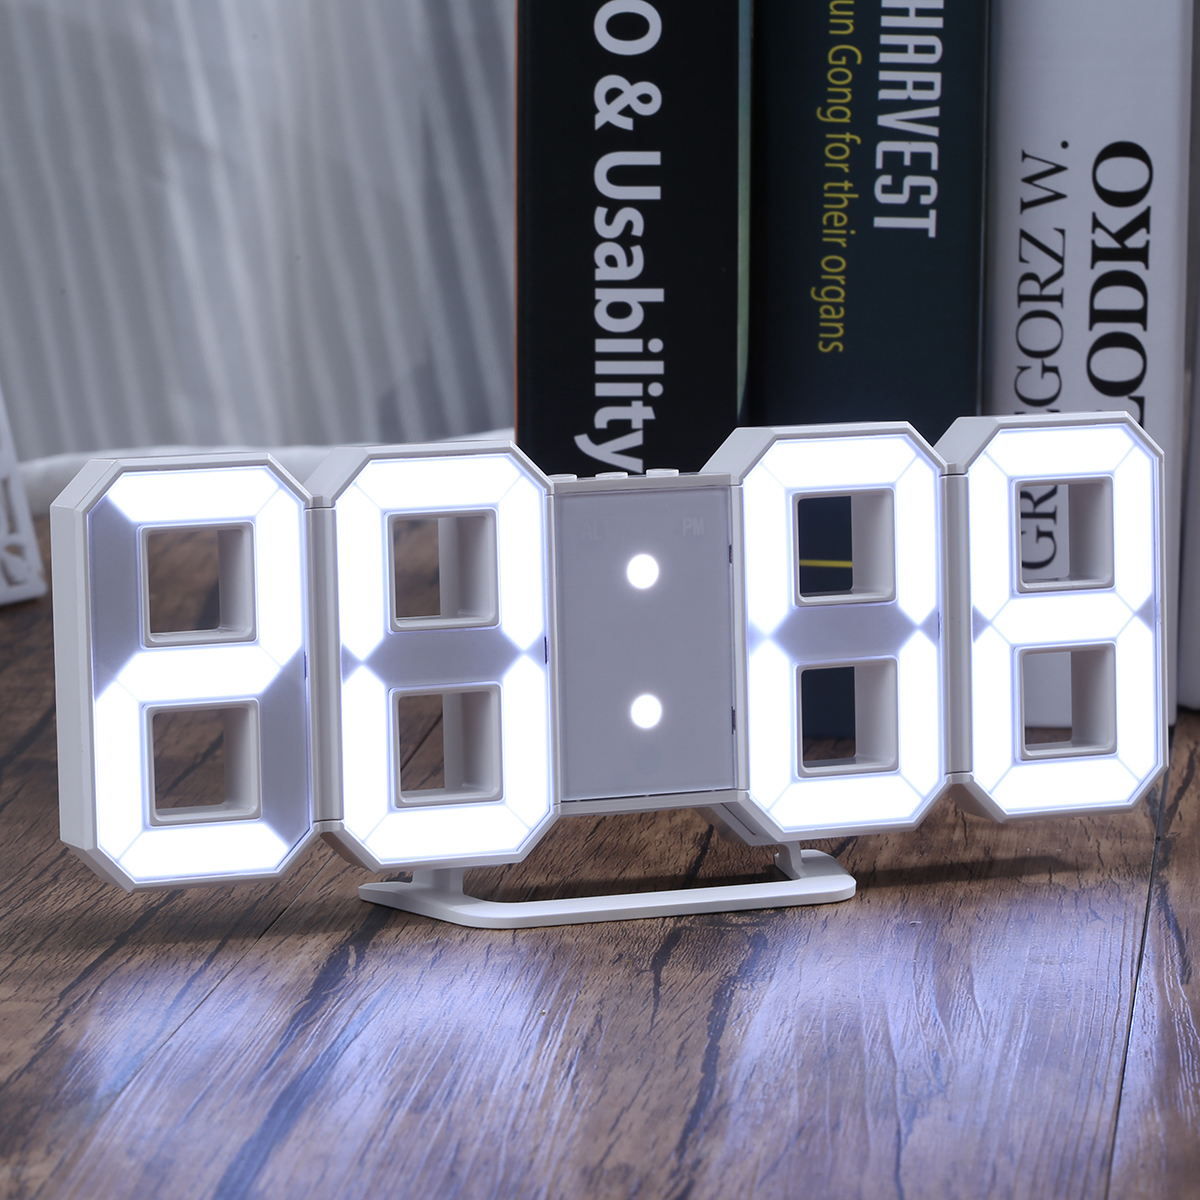 "NEW 3D LED Remote Control Digital Wall Alarm Countdown Clock (White) 6"" Numbers White"